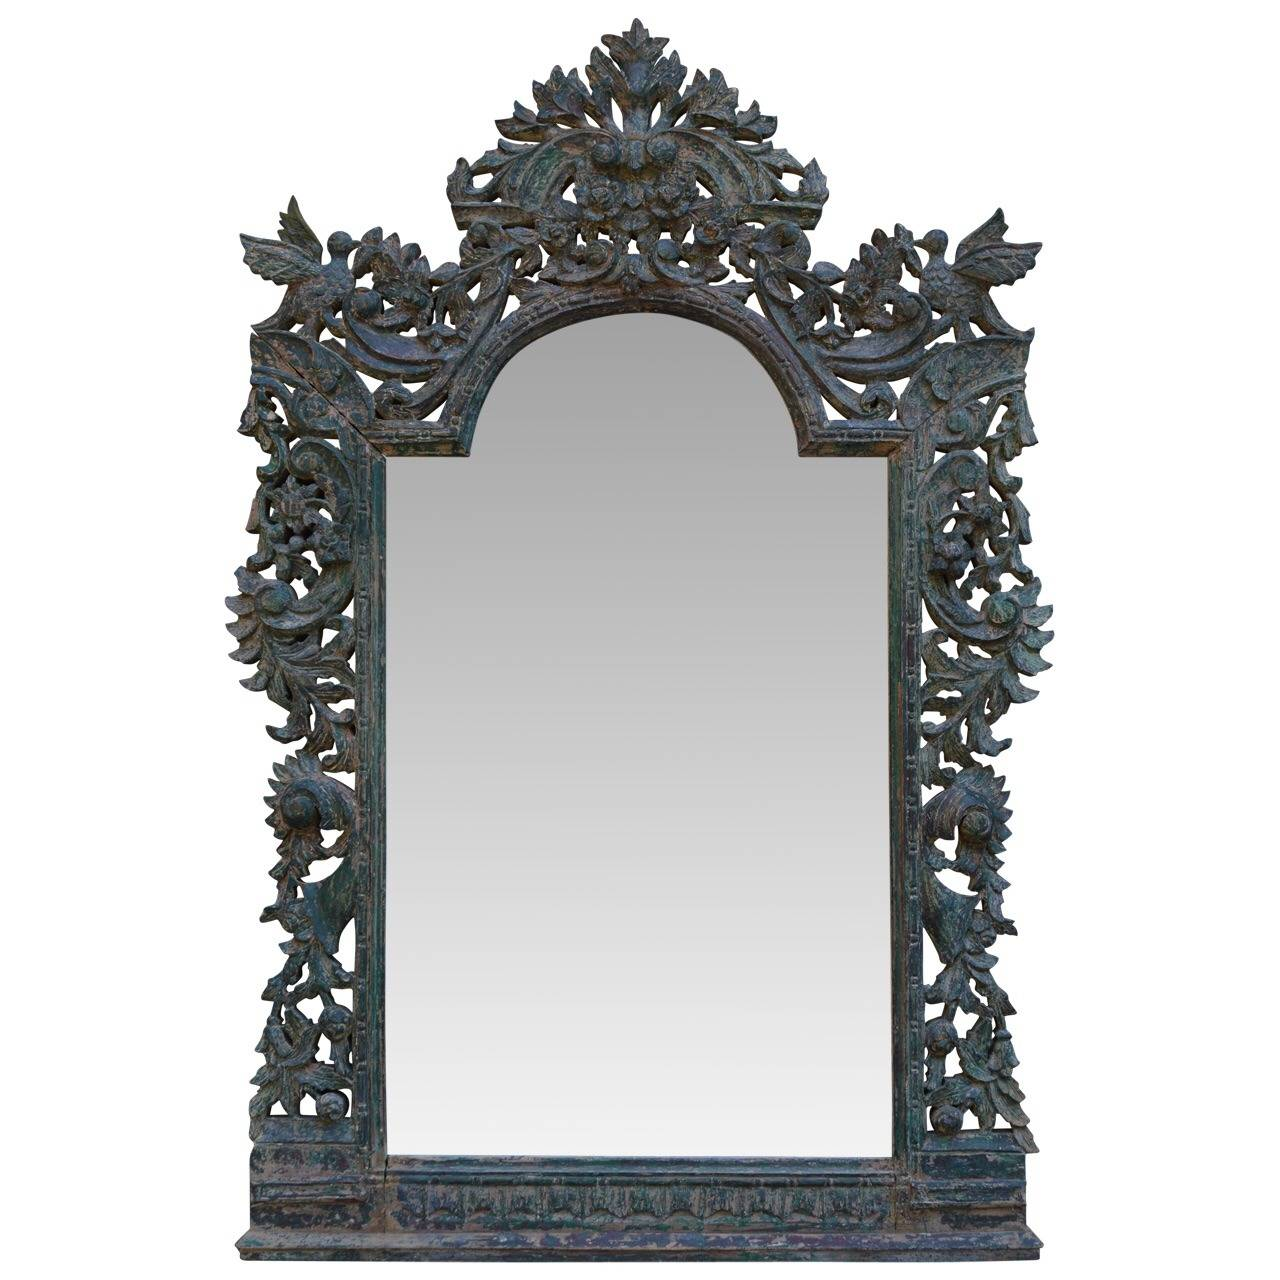 Mid 19th c baroque mirror at 1stdibs for Small baroque mirror